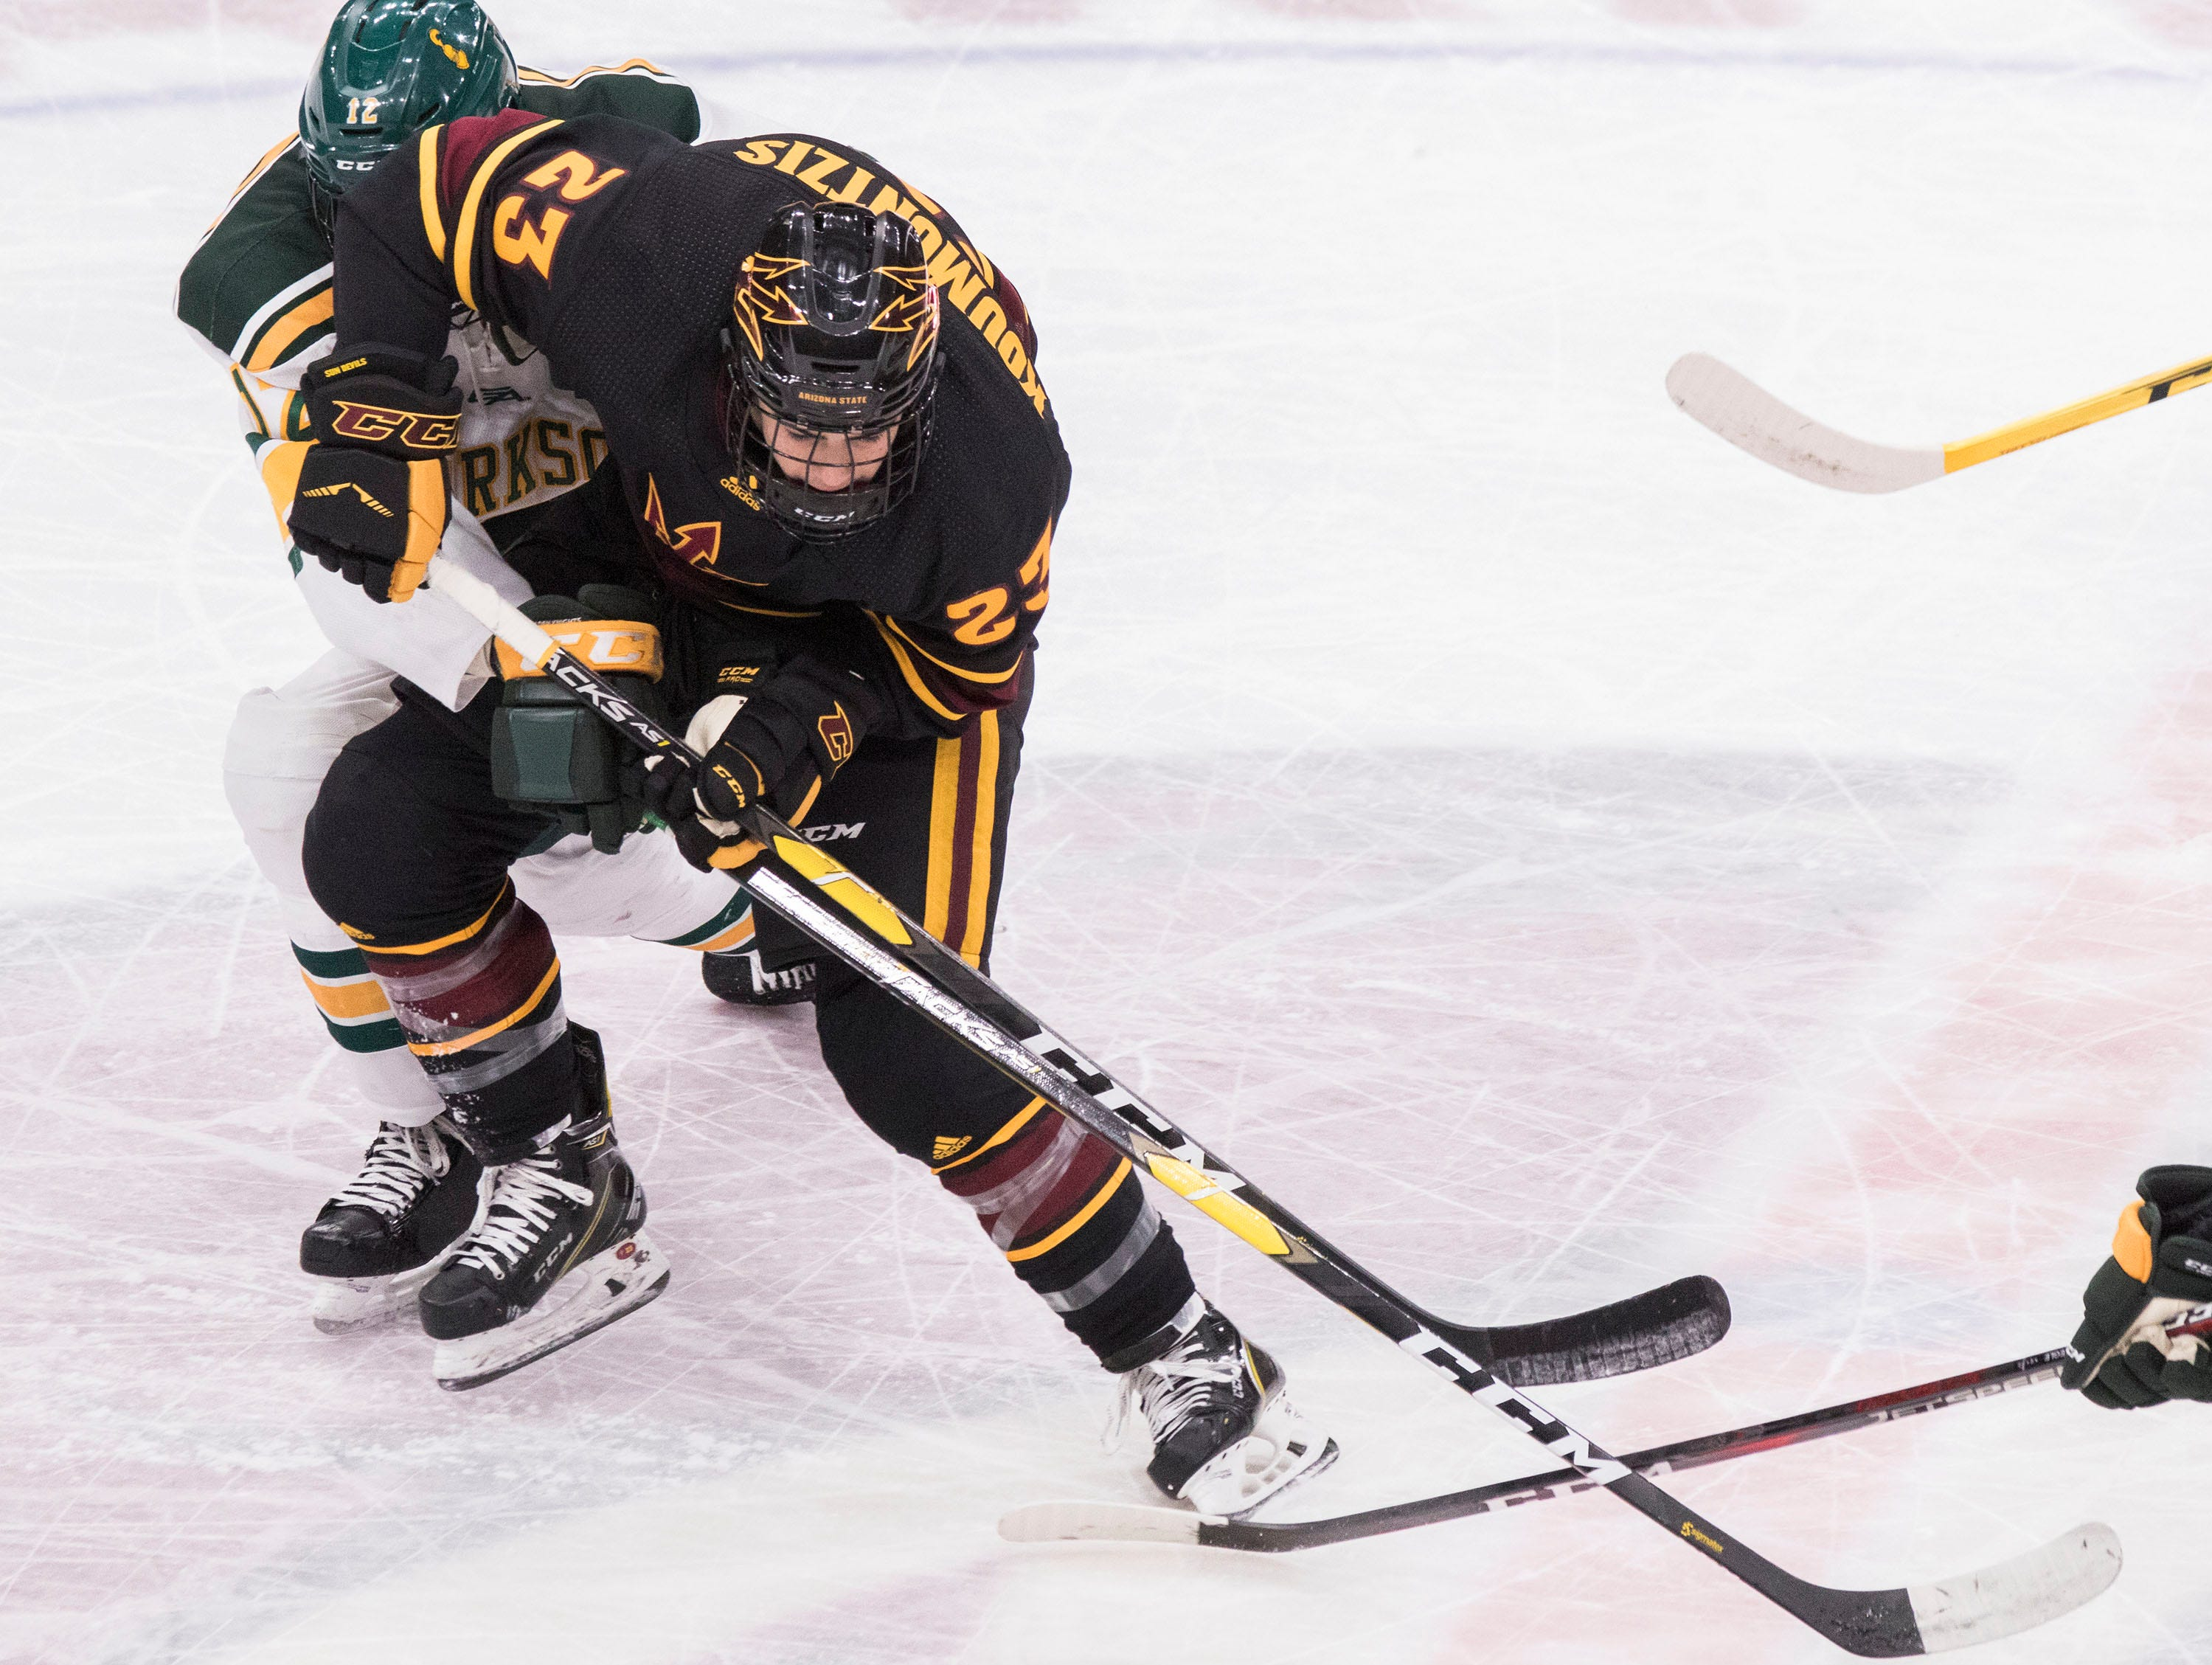 Arizona State University's Demetrios Koumontzis (23) battles for the puck against Clarkson's Jordan Schneider (12) during the first period of their game in the 2018 Desert Hockey Classic in Glendale, Friday, Dec. 28, 2018.